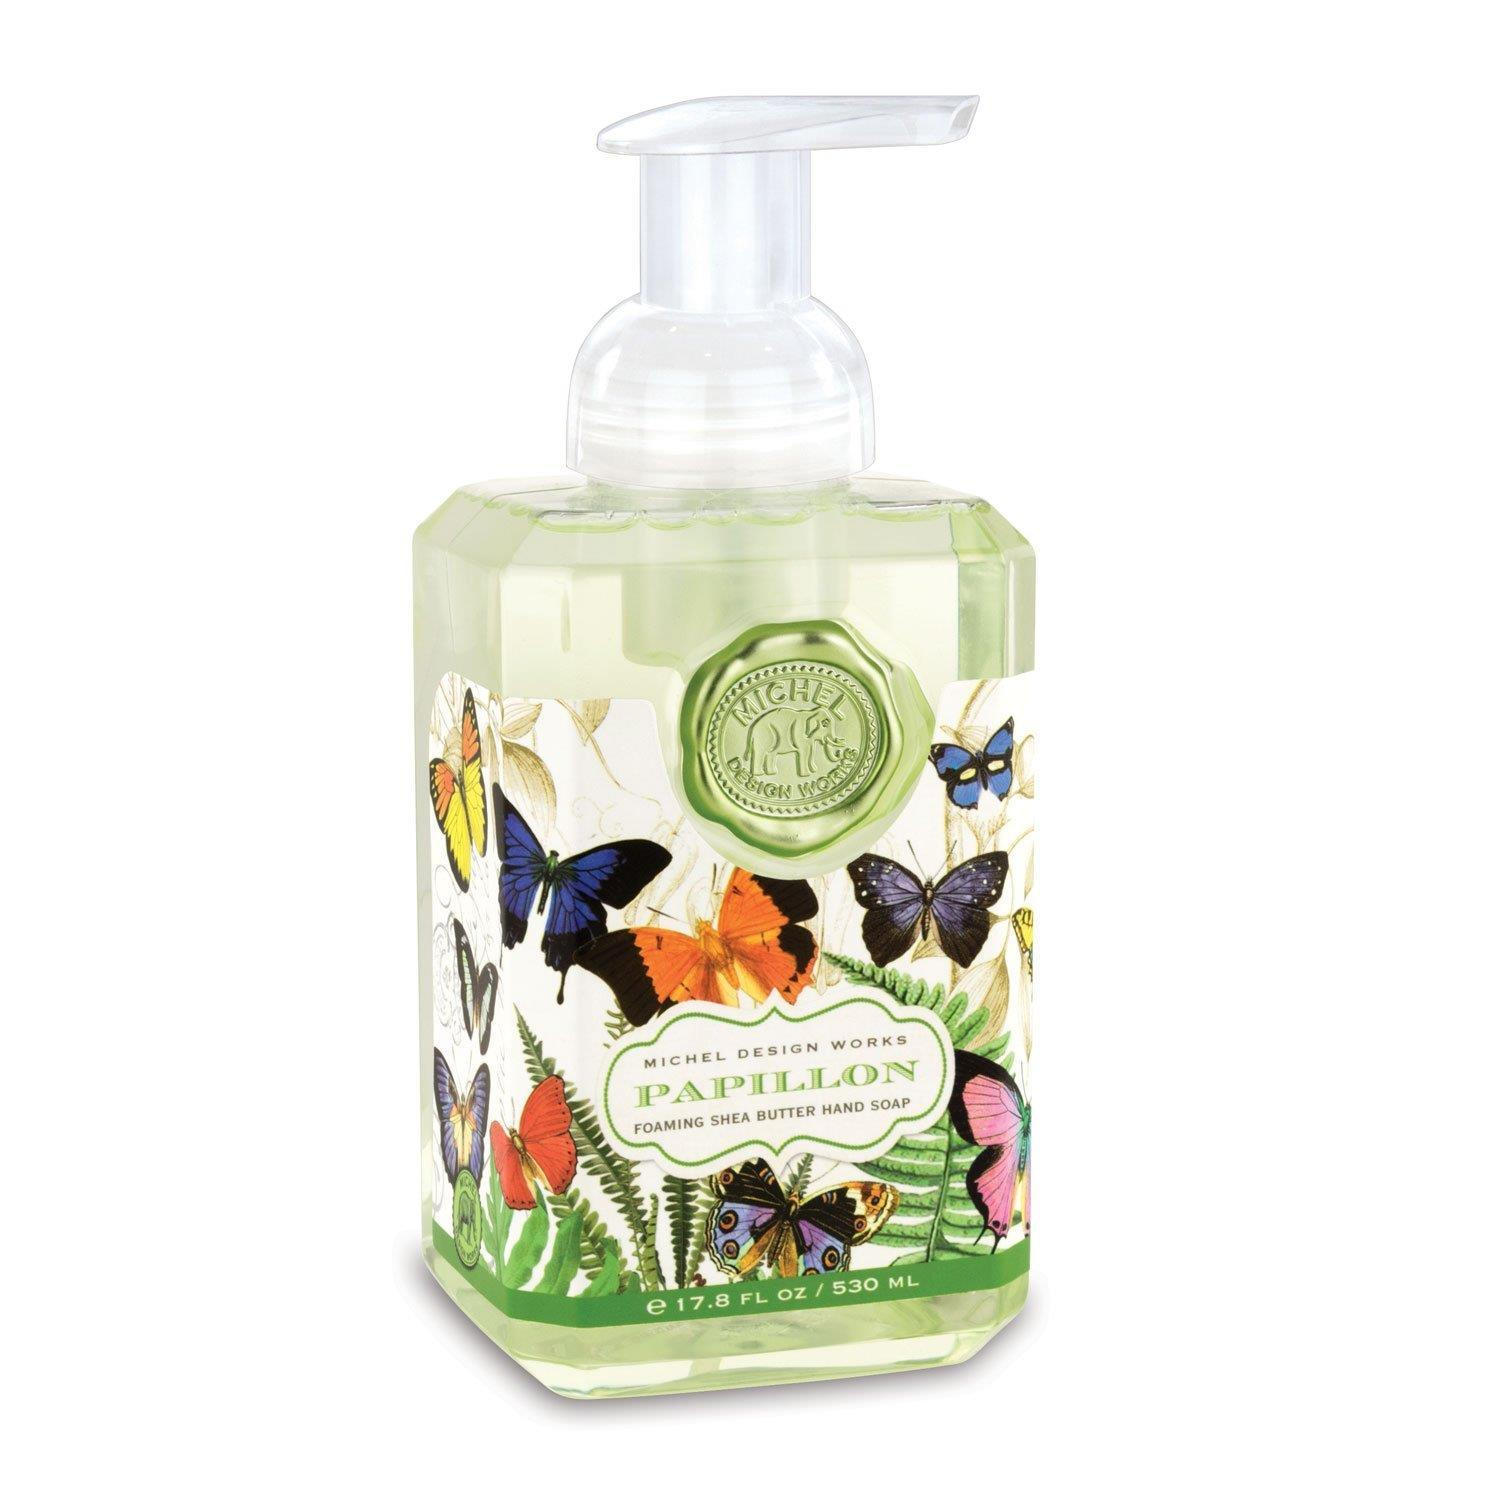 Papillon Foaming Hand Soap - Boutique Marie Dumas